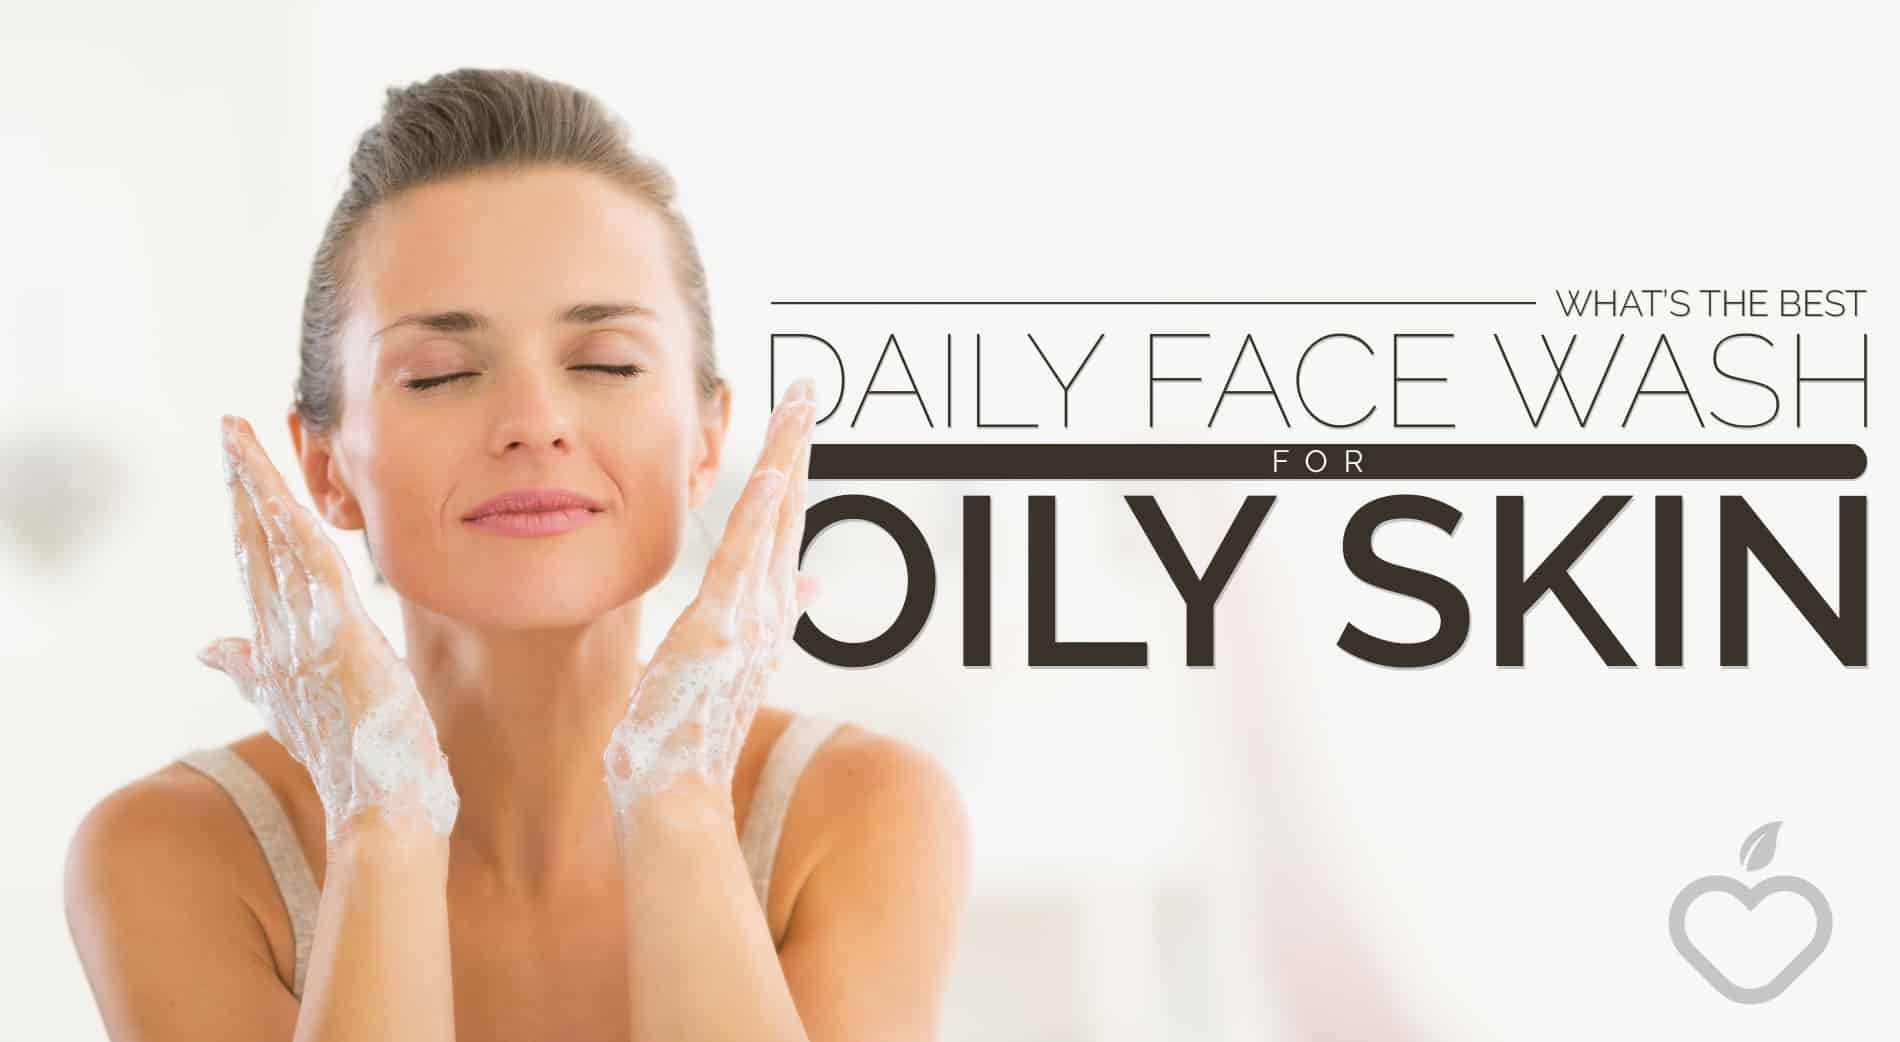 Daily Face Wash Image Design 1 - What's The Greatest Each day Face Wash For Oily Pores and skin